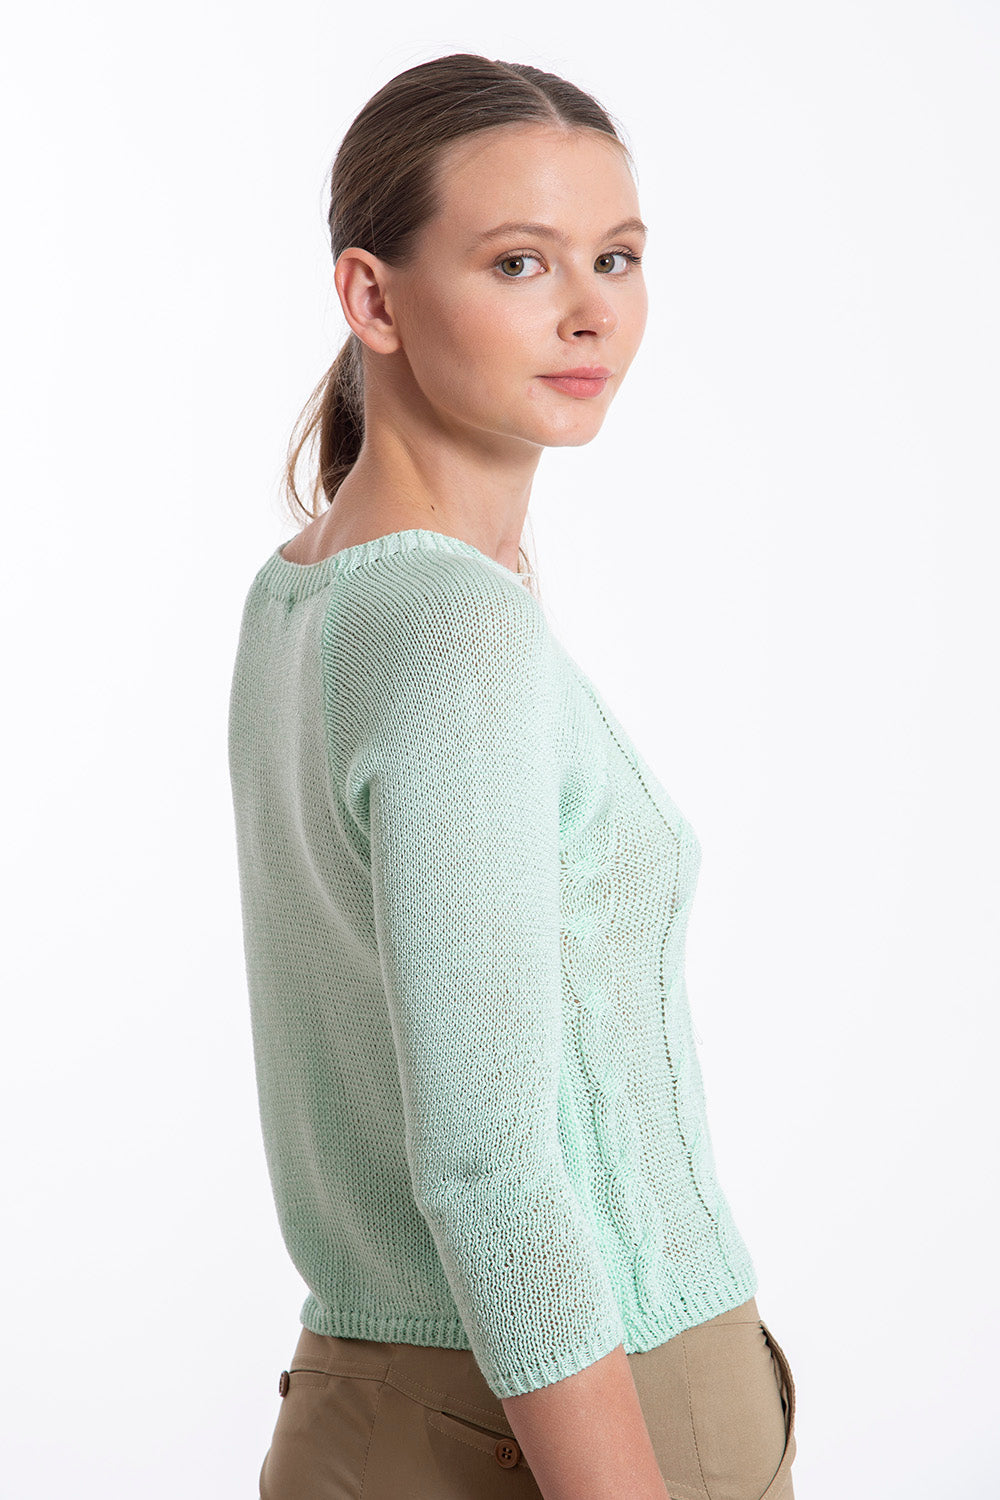 Akè thin knit sweater with pattern